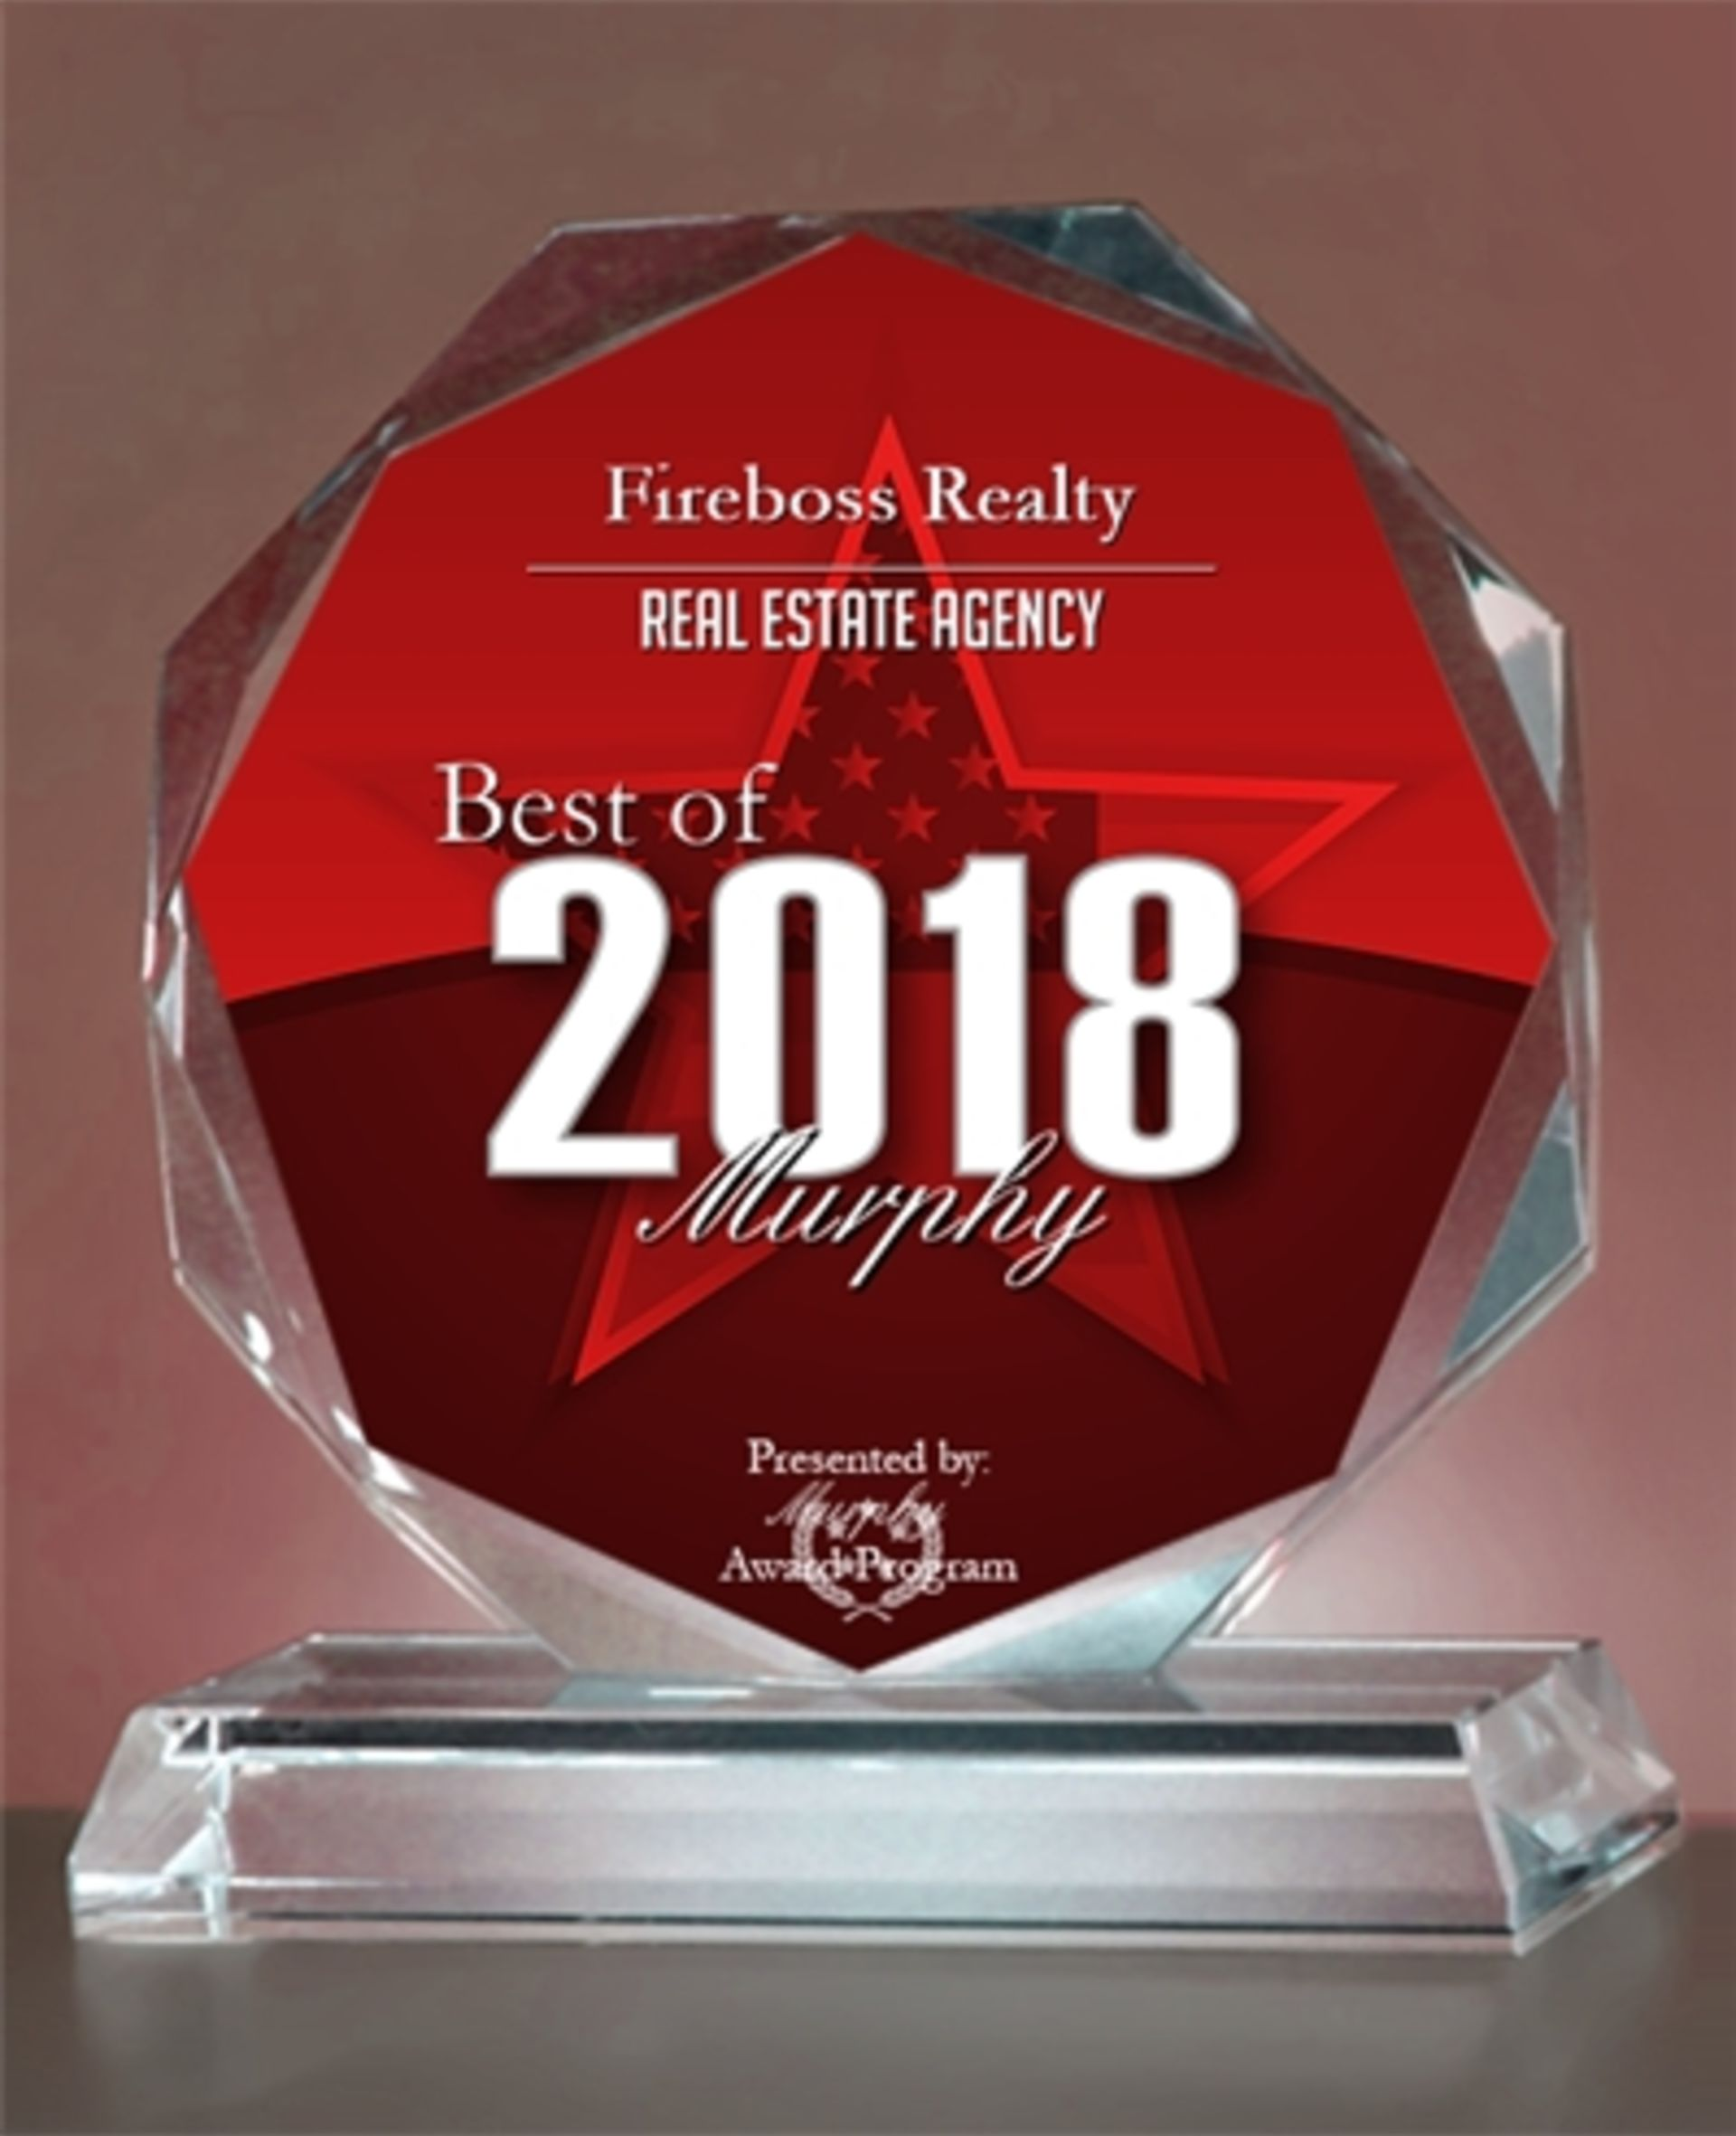 FireBoss Realty Receives 2018 Best Of Murphy Award